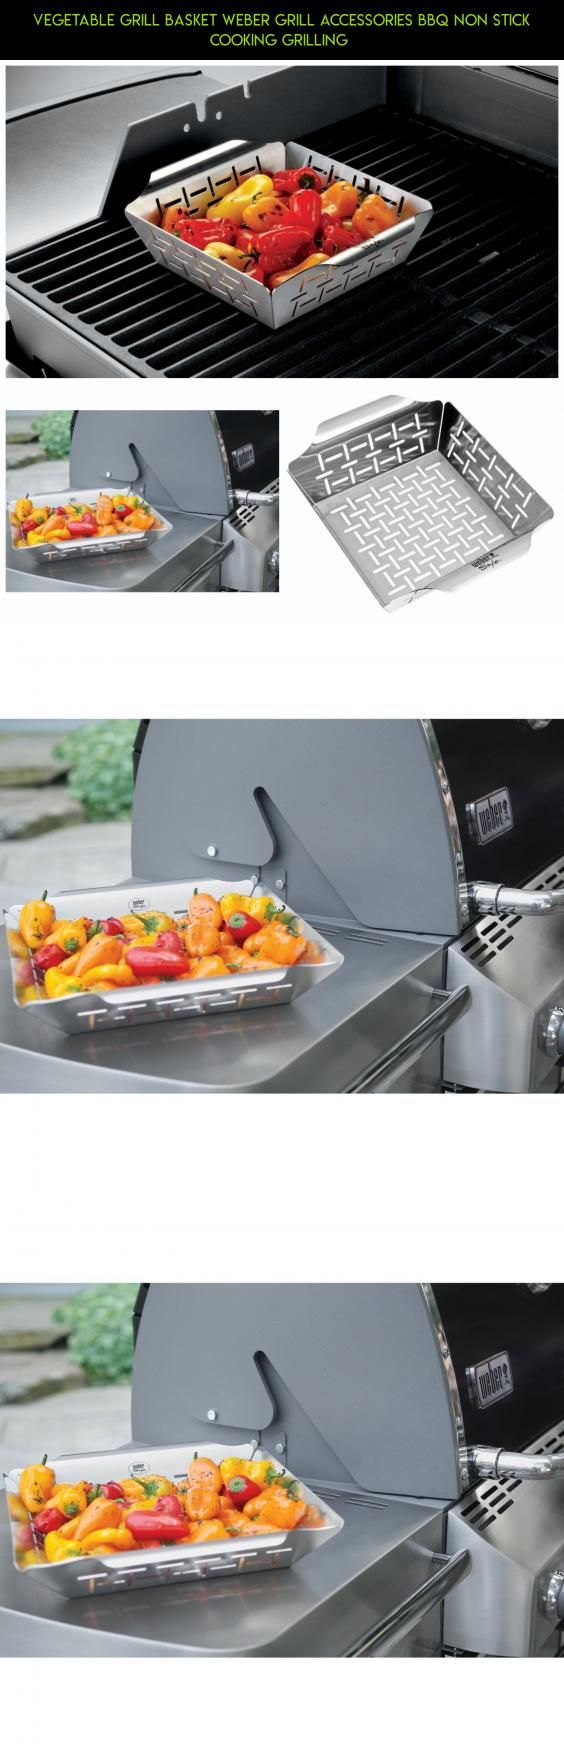 best 25 weber grill accessories ideas on pinterest weber bbq